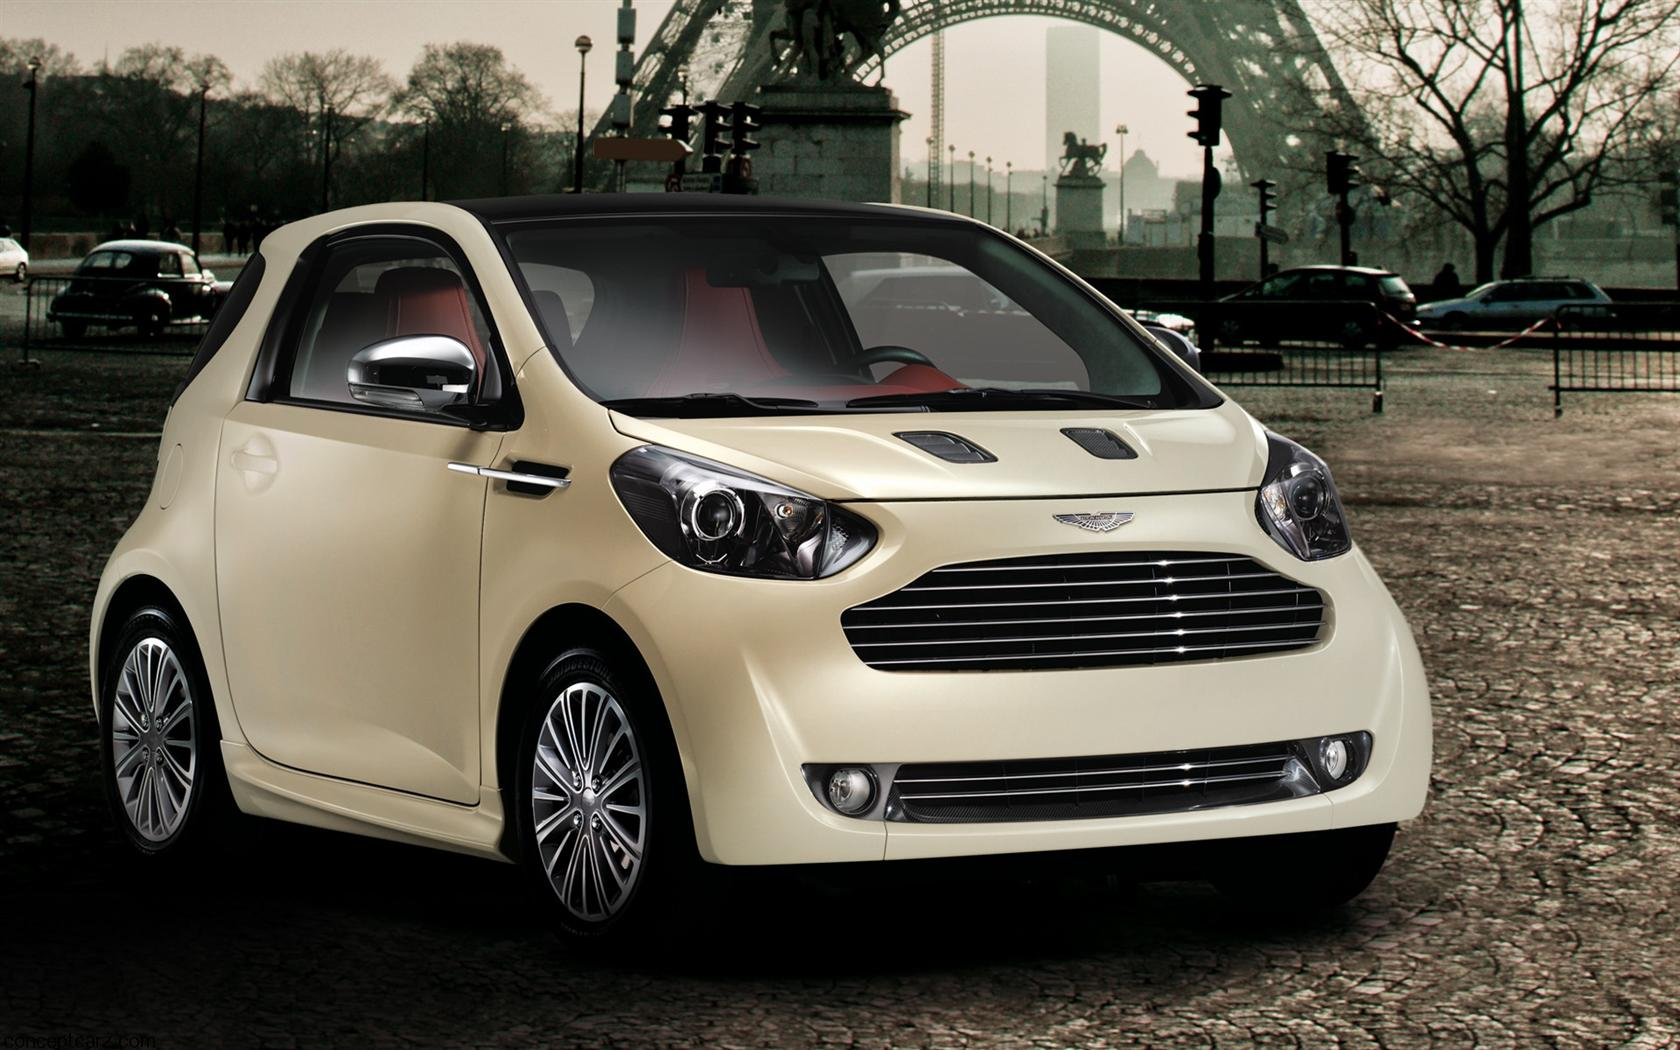 2018 Aston Martin Cygnet Concept photo - 2